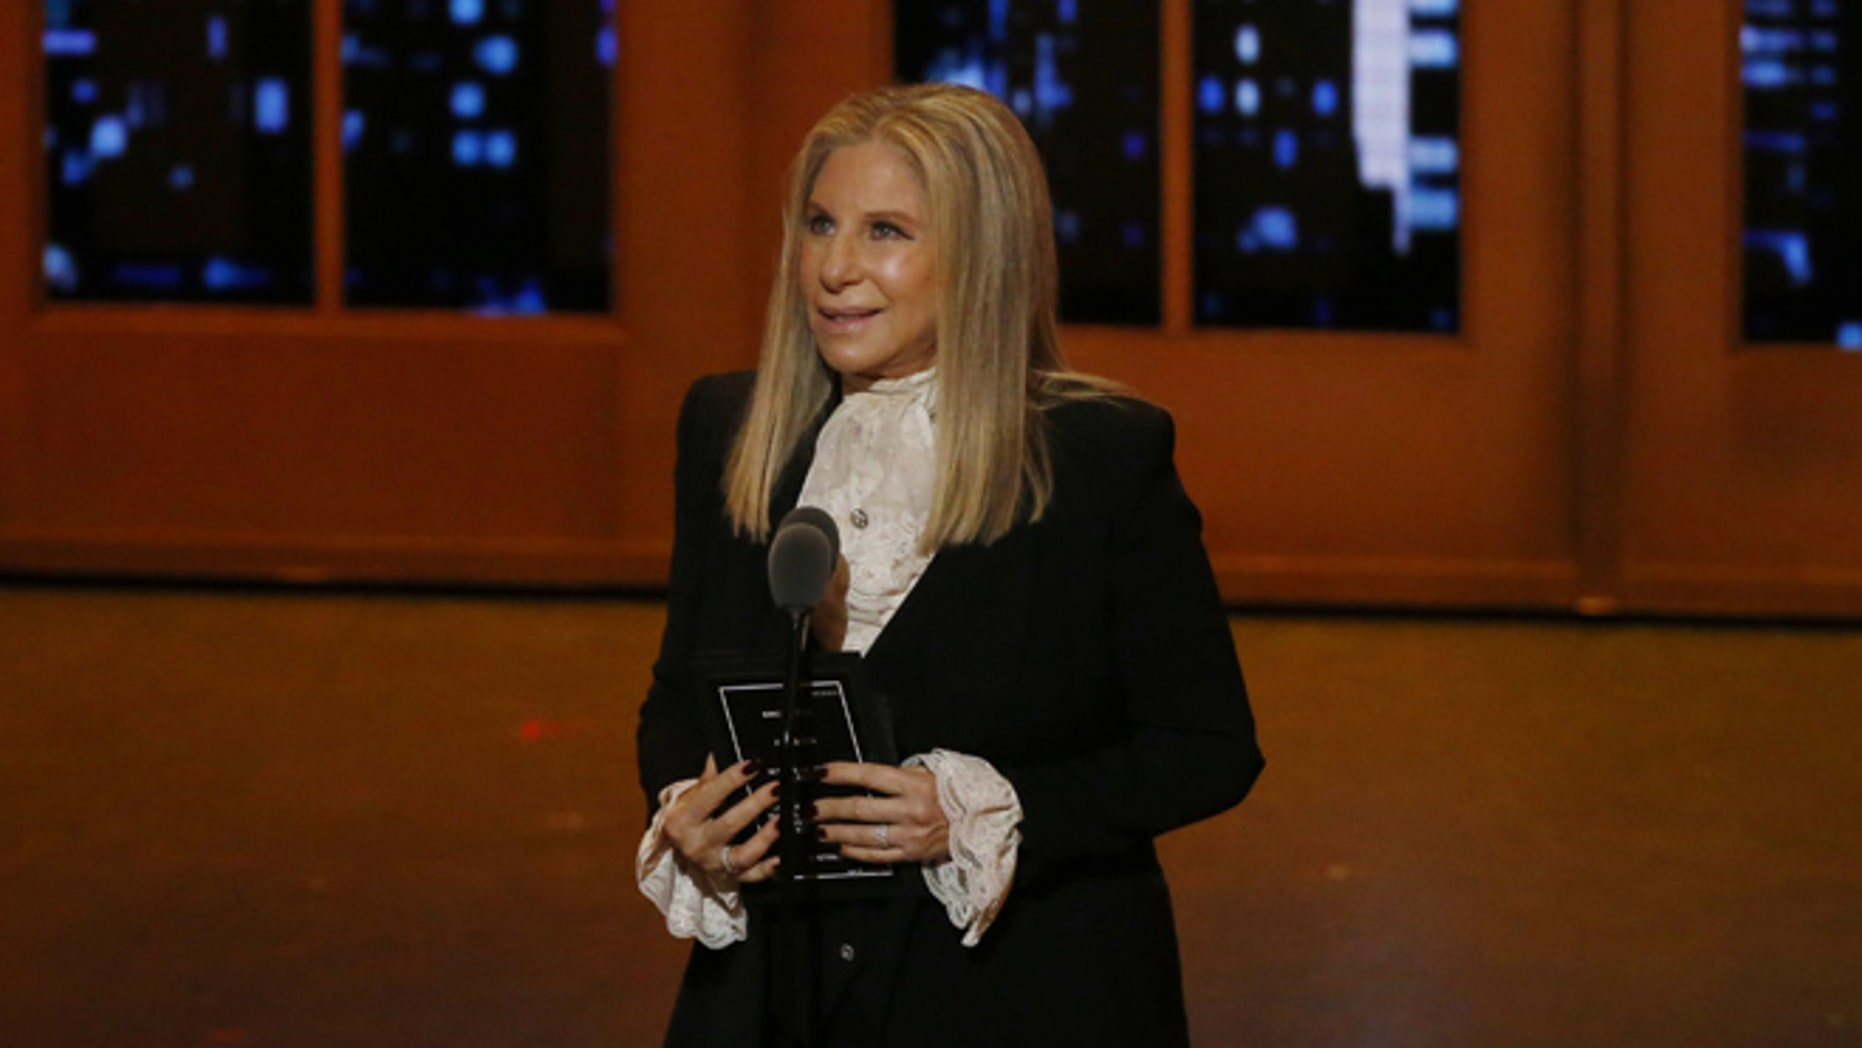 Barbra Streisand says she missed out on Oscar nominations due to sexism.